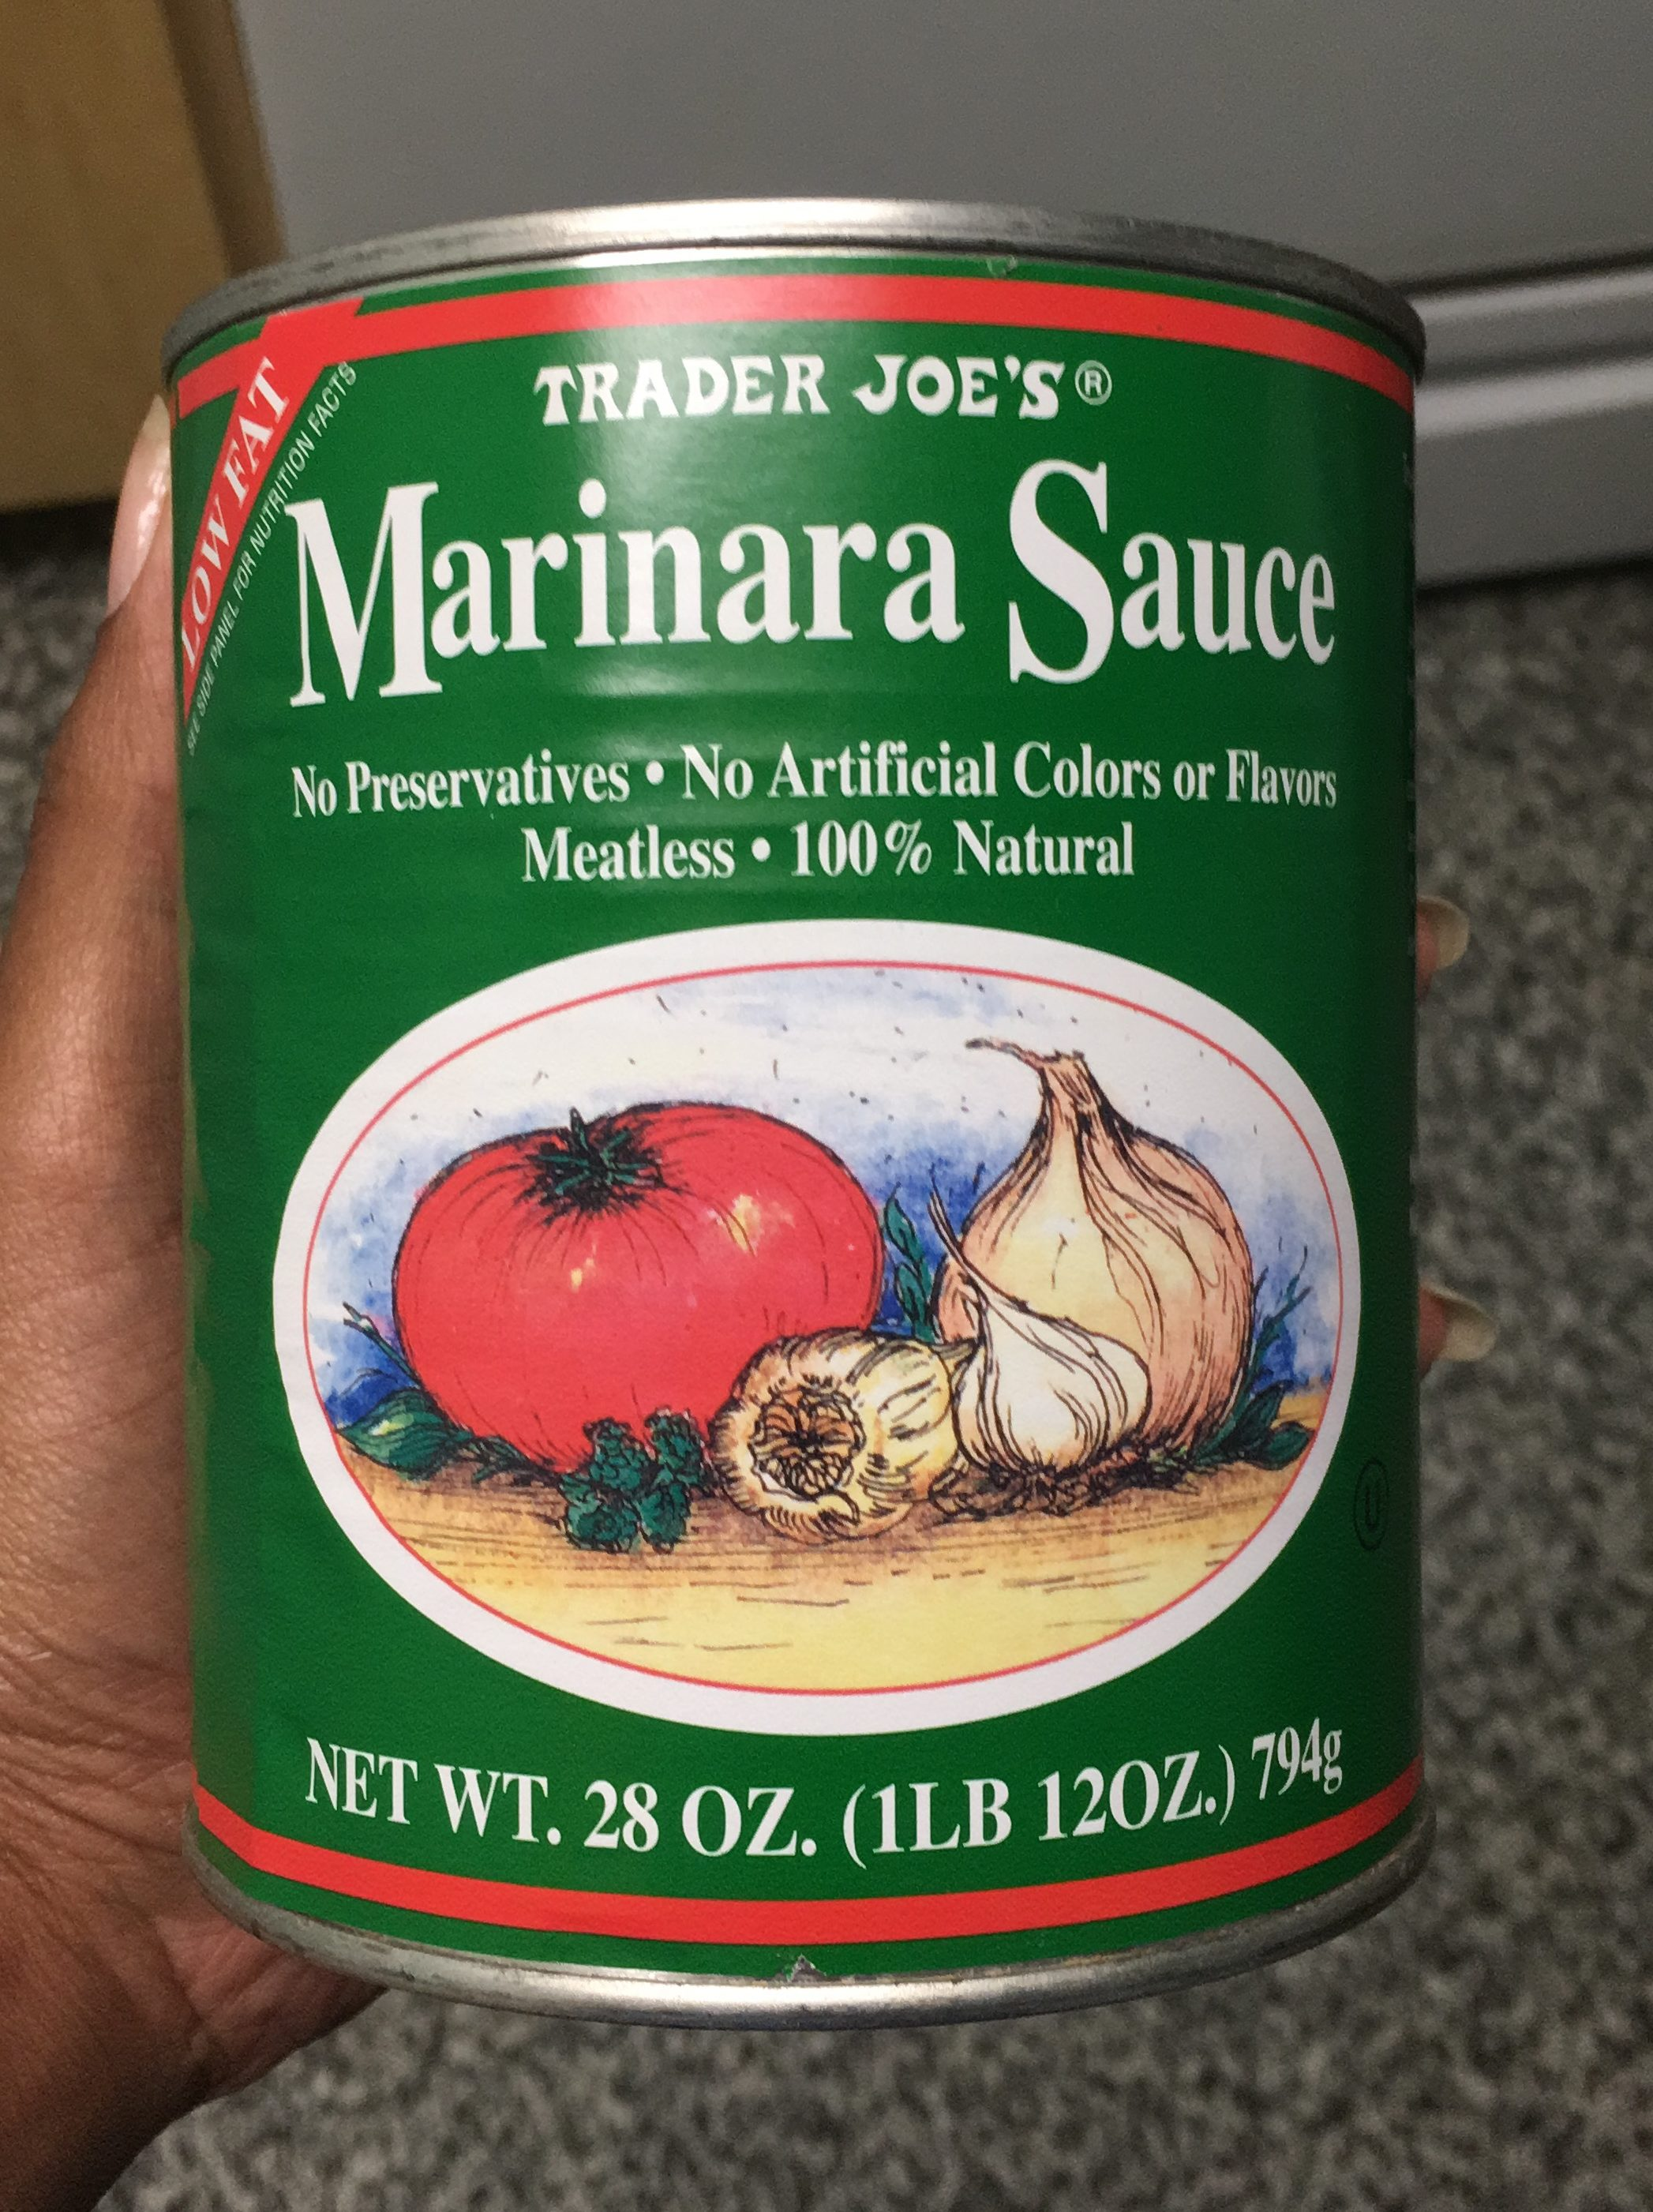 Whole 30 Approved Trader Joe's Marinara Sauce